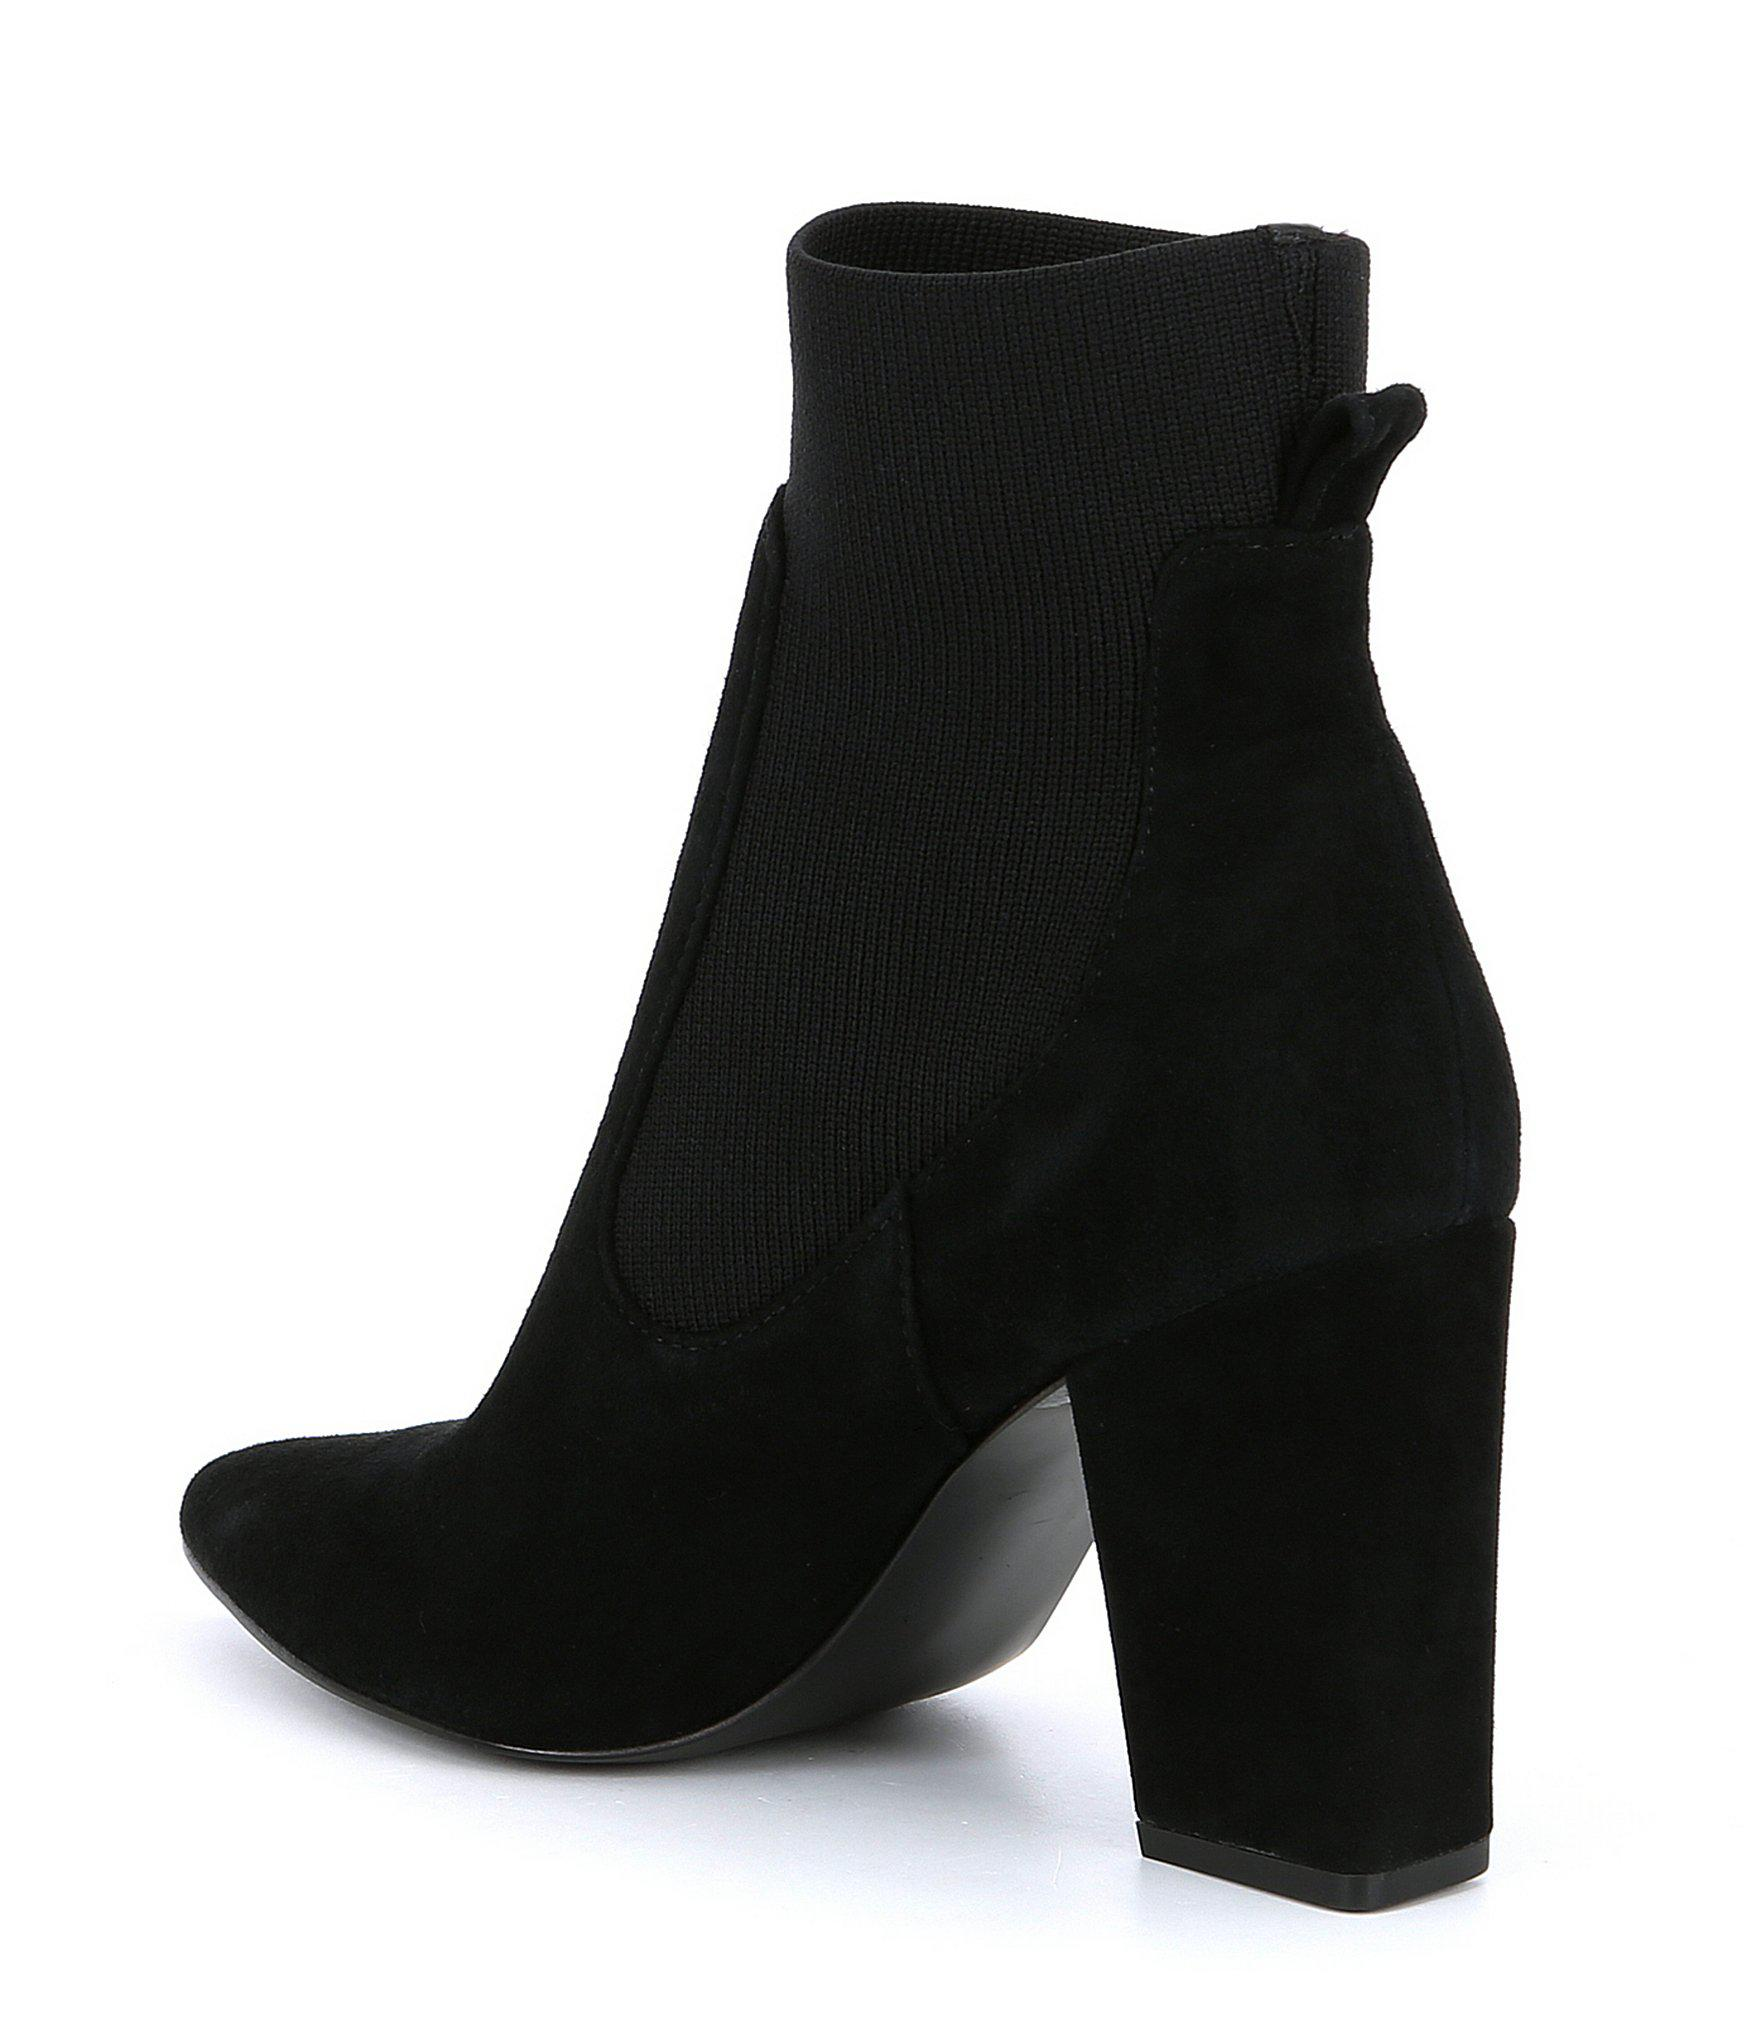 726d7c380d4 Lyst - Steve Madden Richter Suede Block Heel Booties in Black